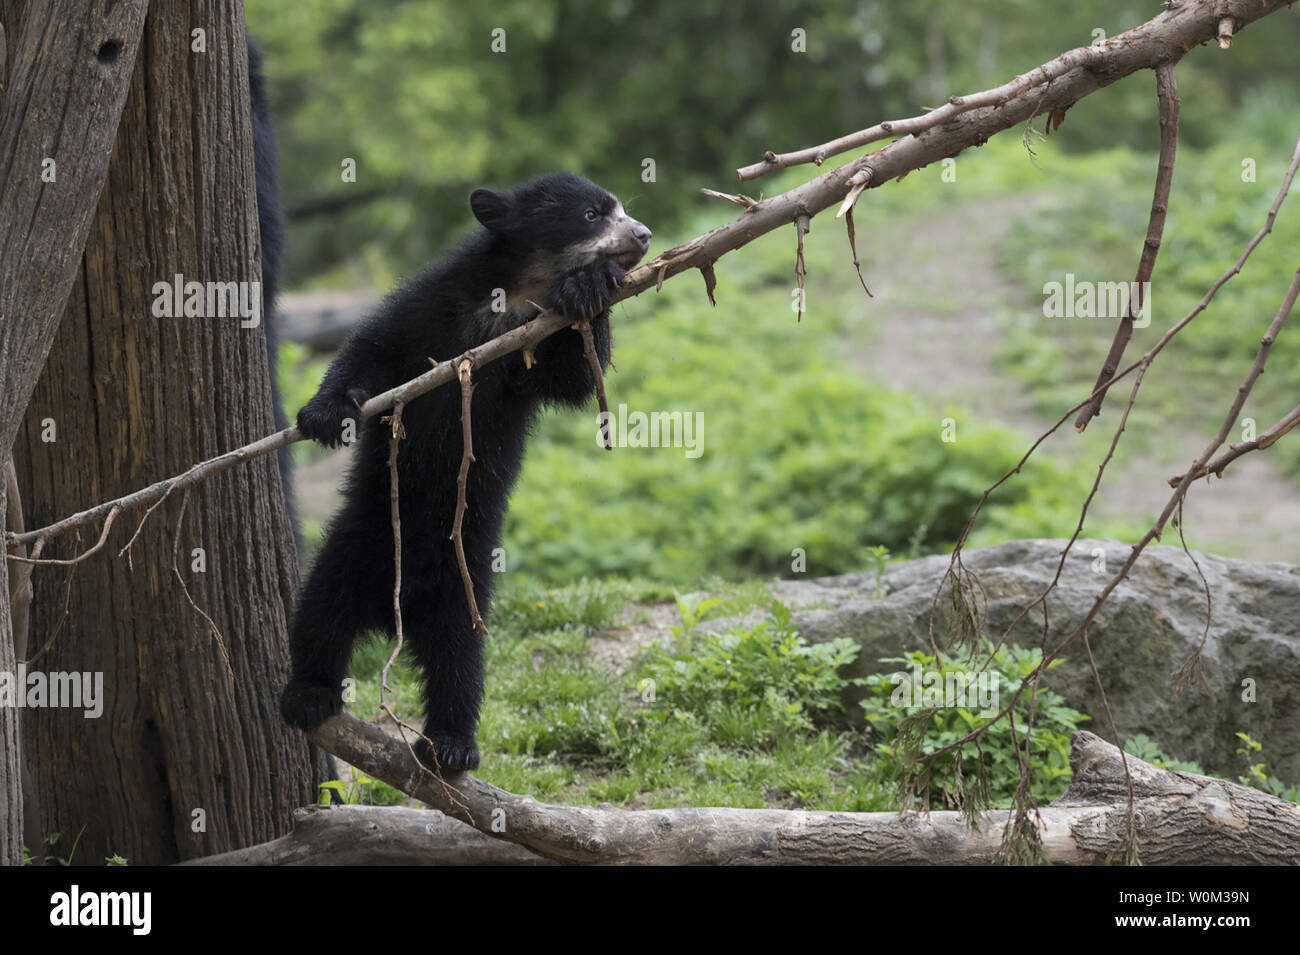 A male Andean bear cub, born over the winter at WCS's (Wildlife Conservation Society) Queens Zoo, has made his public debut as seen in this photograph released on May 4, 2017. The cub is the first Andean bear born in New York City. The unnamed cub now weighs 25lbs and is ready to venture into the zoo's bear habitat with his mom to start exploring. Andean bears are the only bear species native to South America. They are also known as spectacled bears due to the markings on their faces that sometimes resemble glasses. They have characteristically short faces and are relatively small in compariso Stock Photo